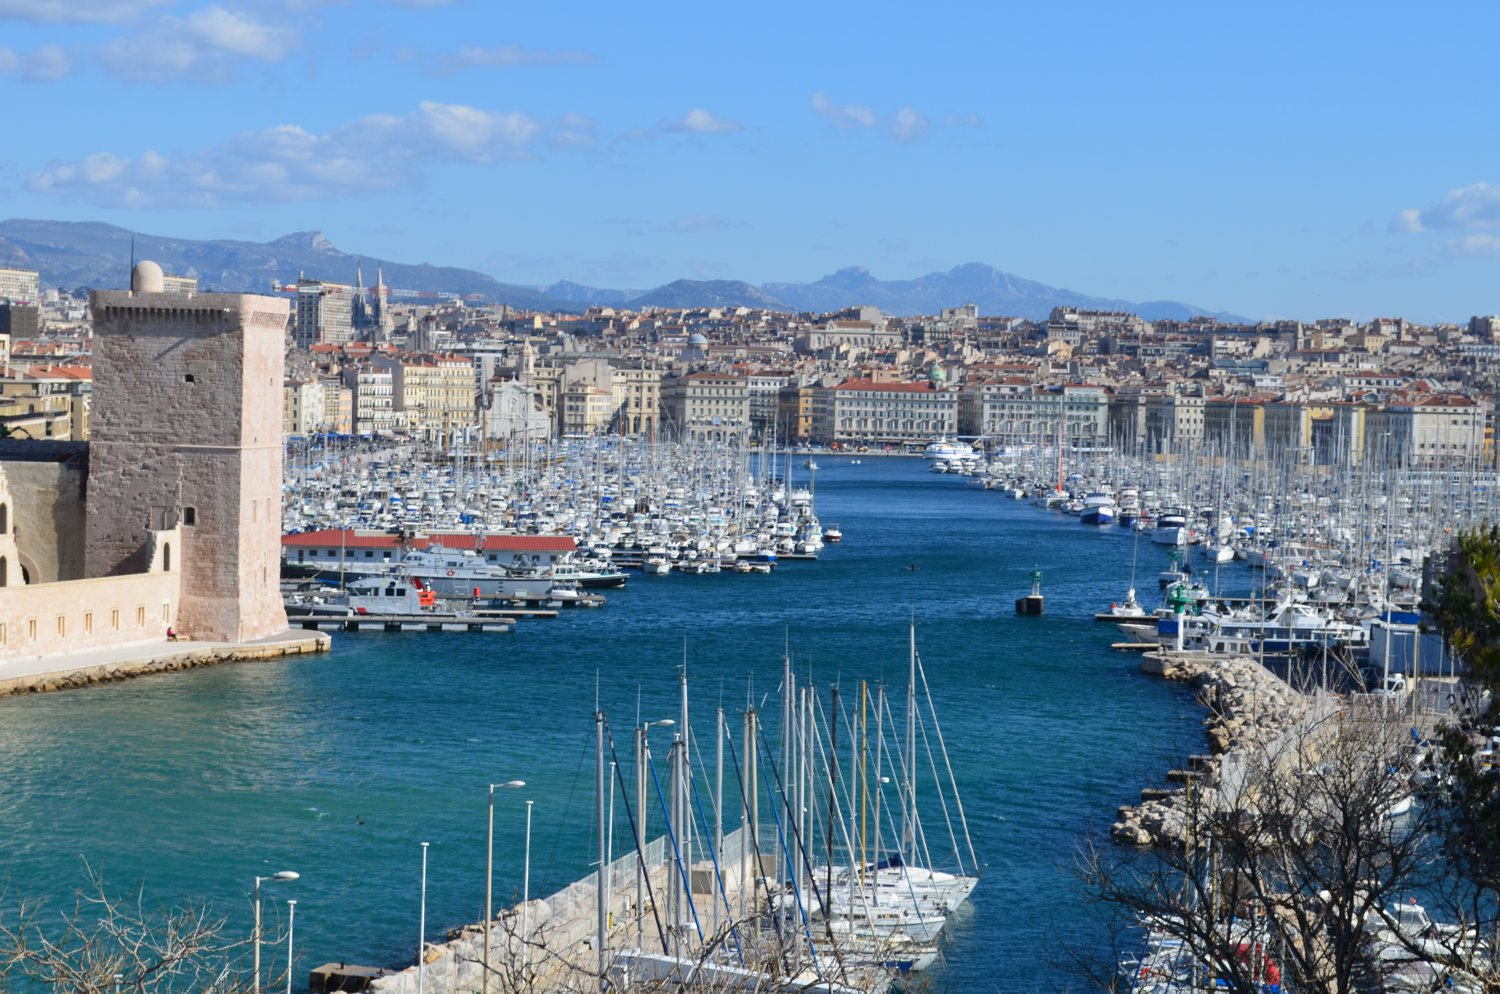 Marseille. Semaine Nautique Internationale de Mediter ranee (SNIM), Франция. Балтийский парусный клуб